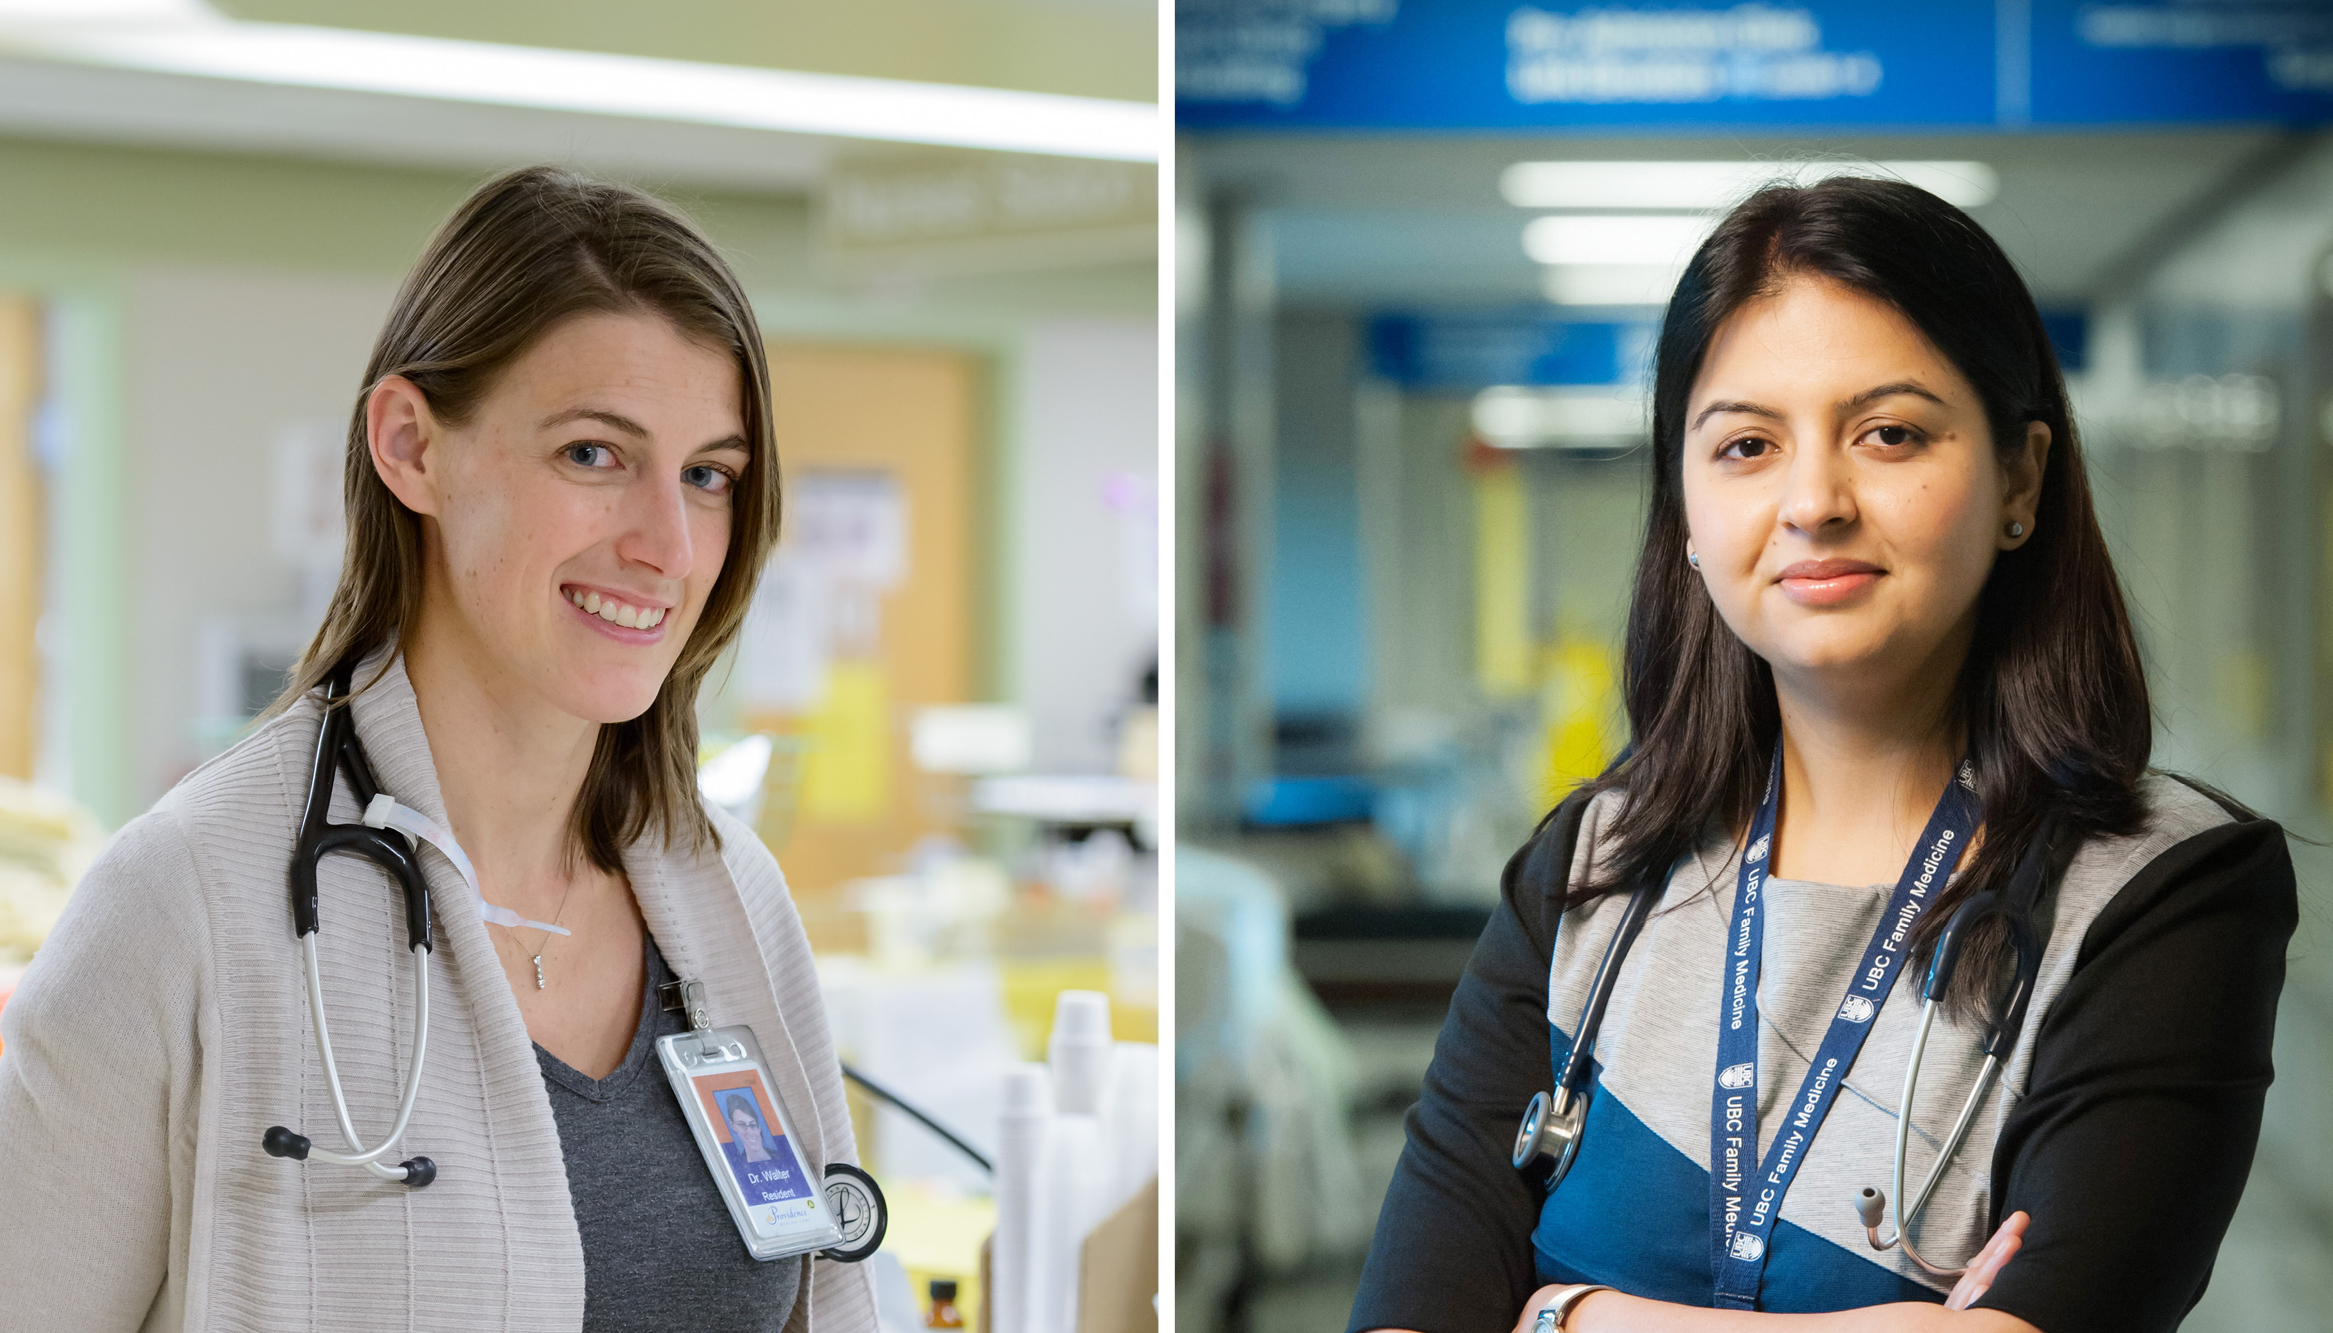 Creating new opportunities for international medical graduates